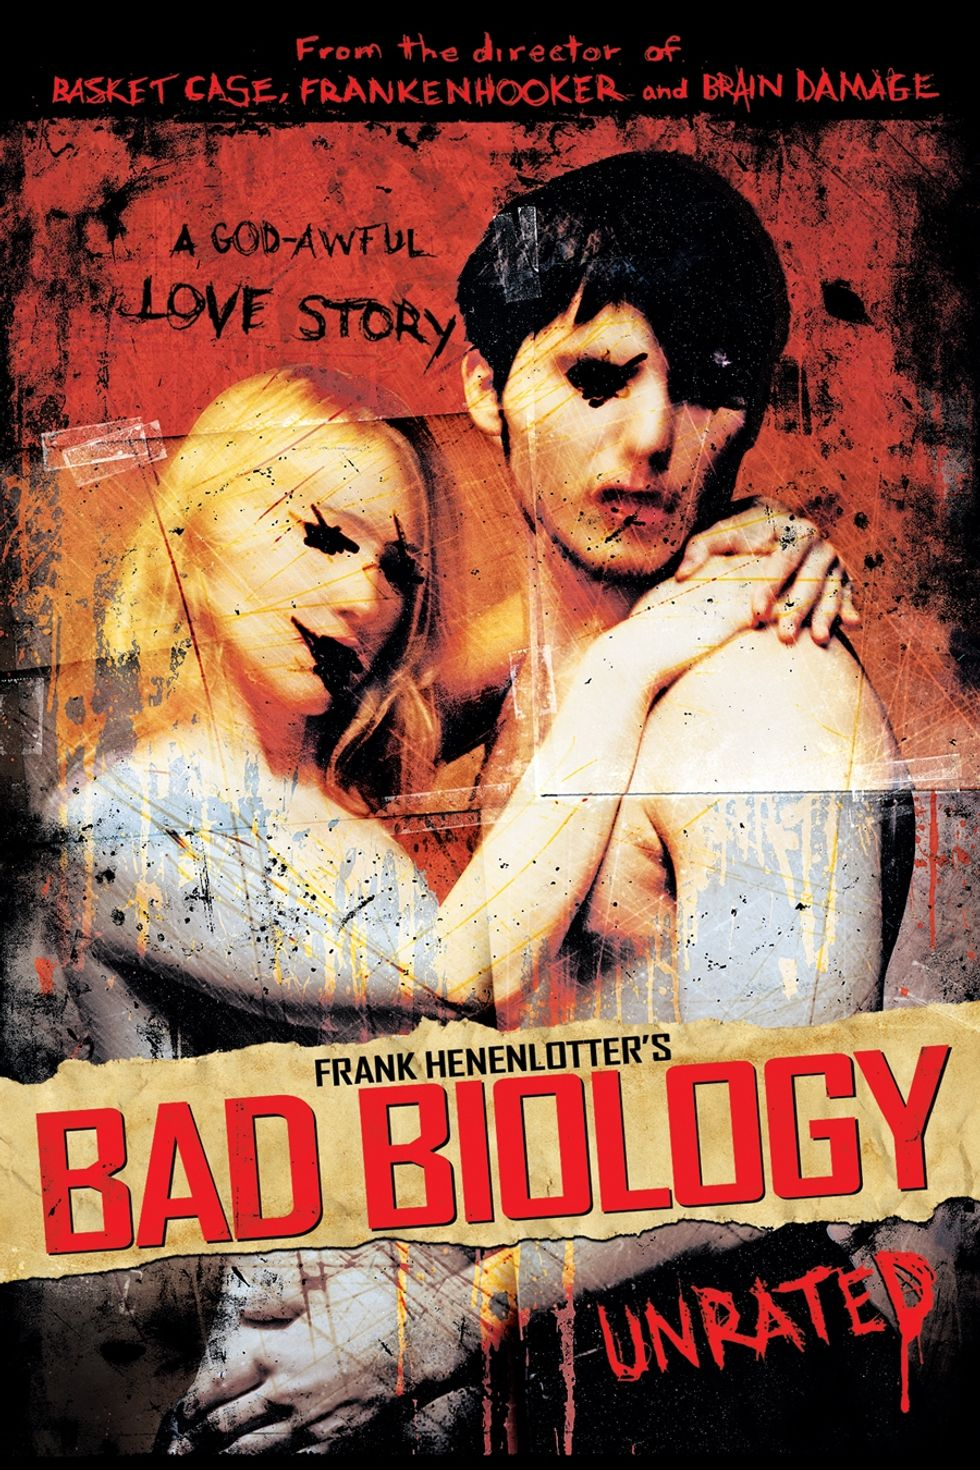 It's a Mutant Genitalia Fest! Bad Biology Is Out On DVD.